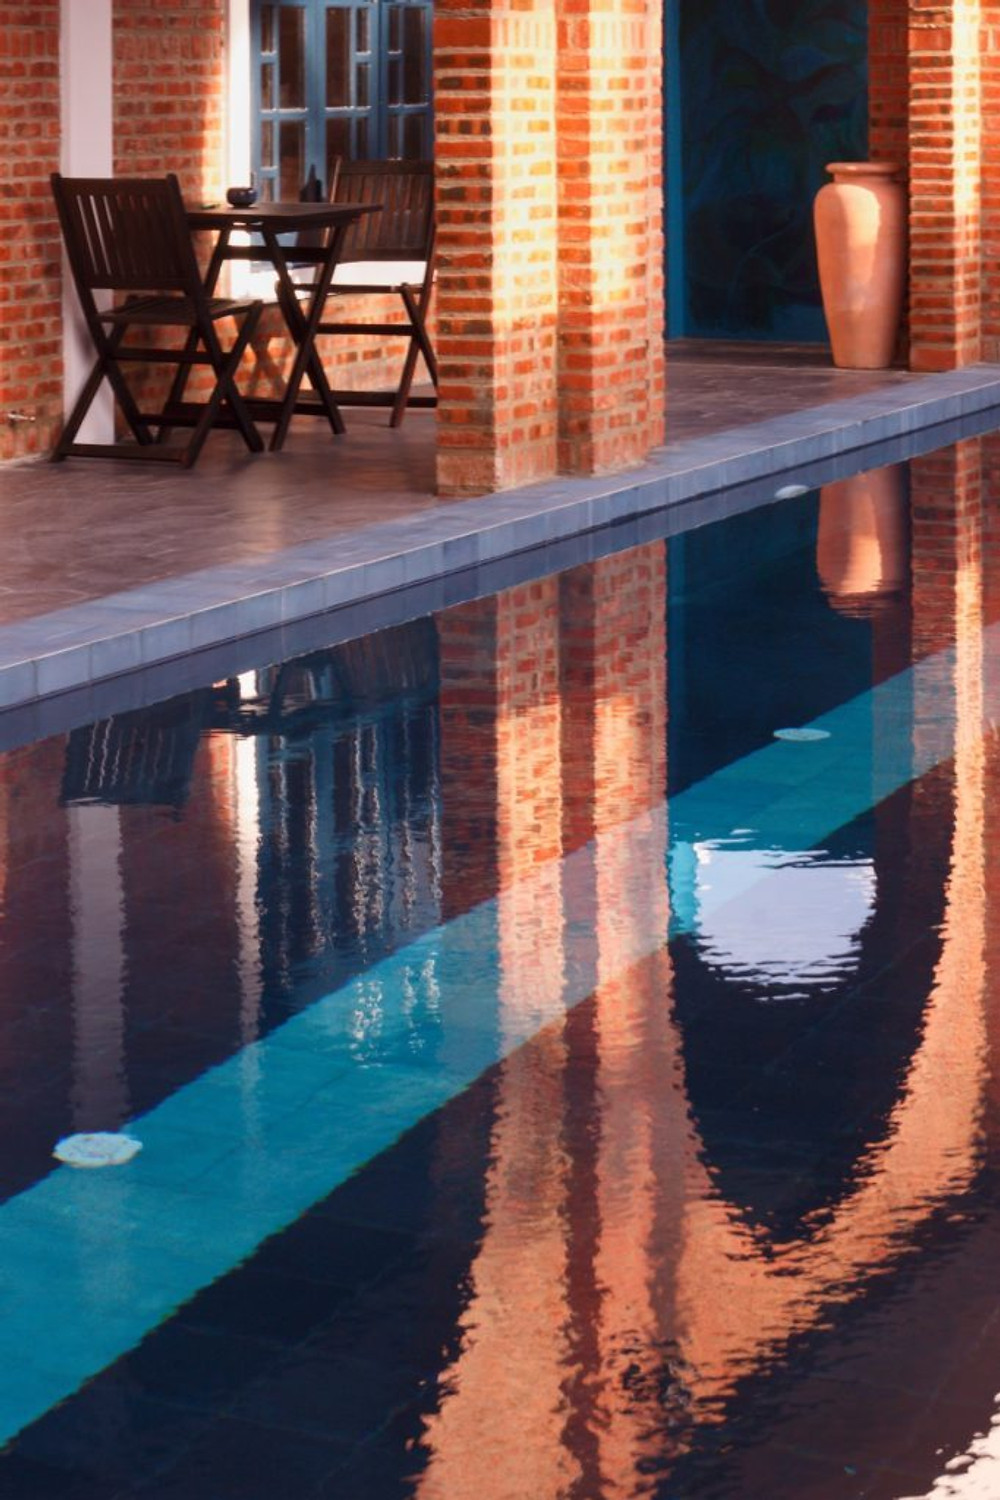 A view of the pool at the Gratitude Vietnam Yoga Retreat Venue